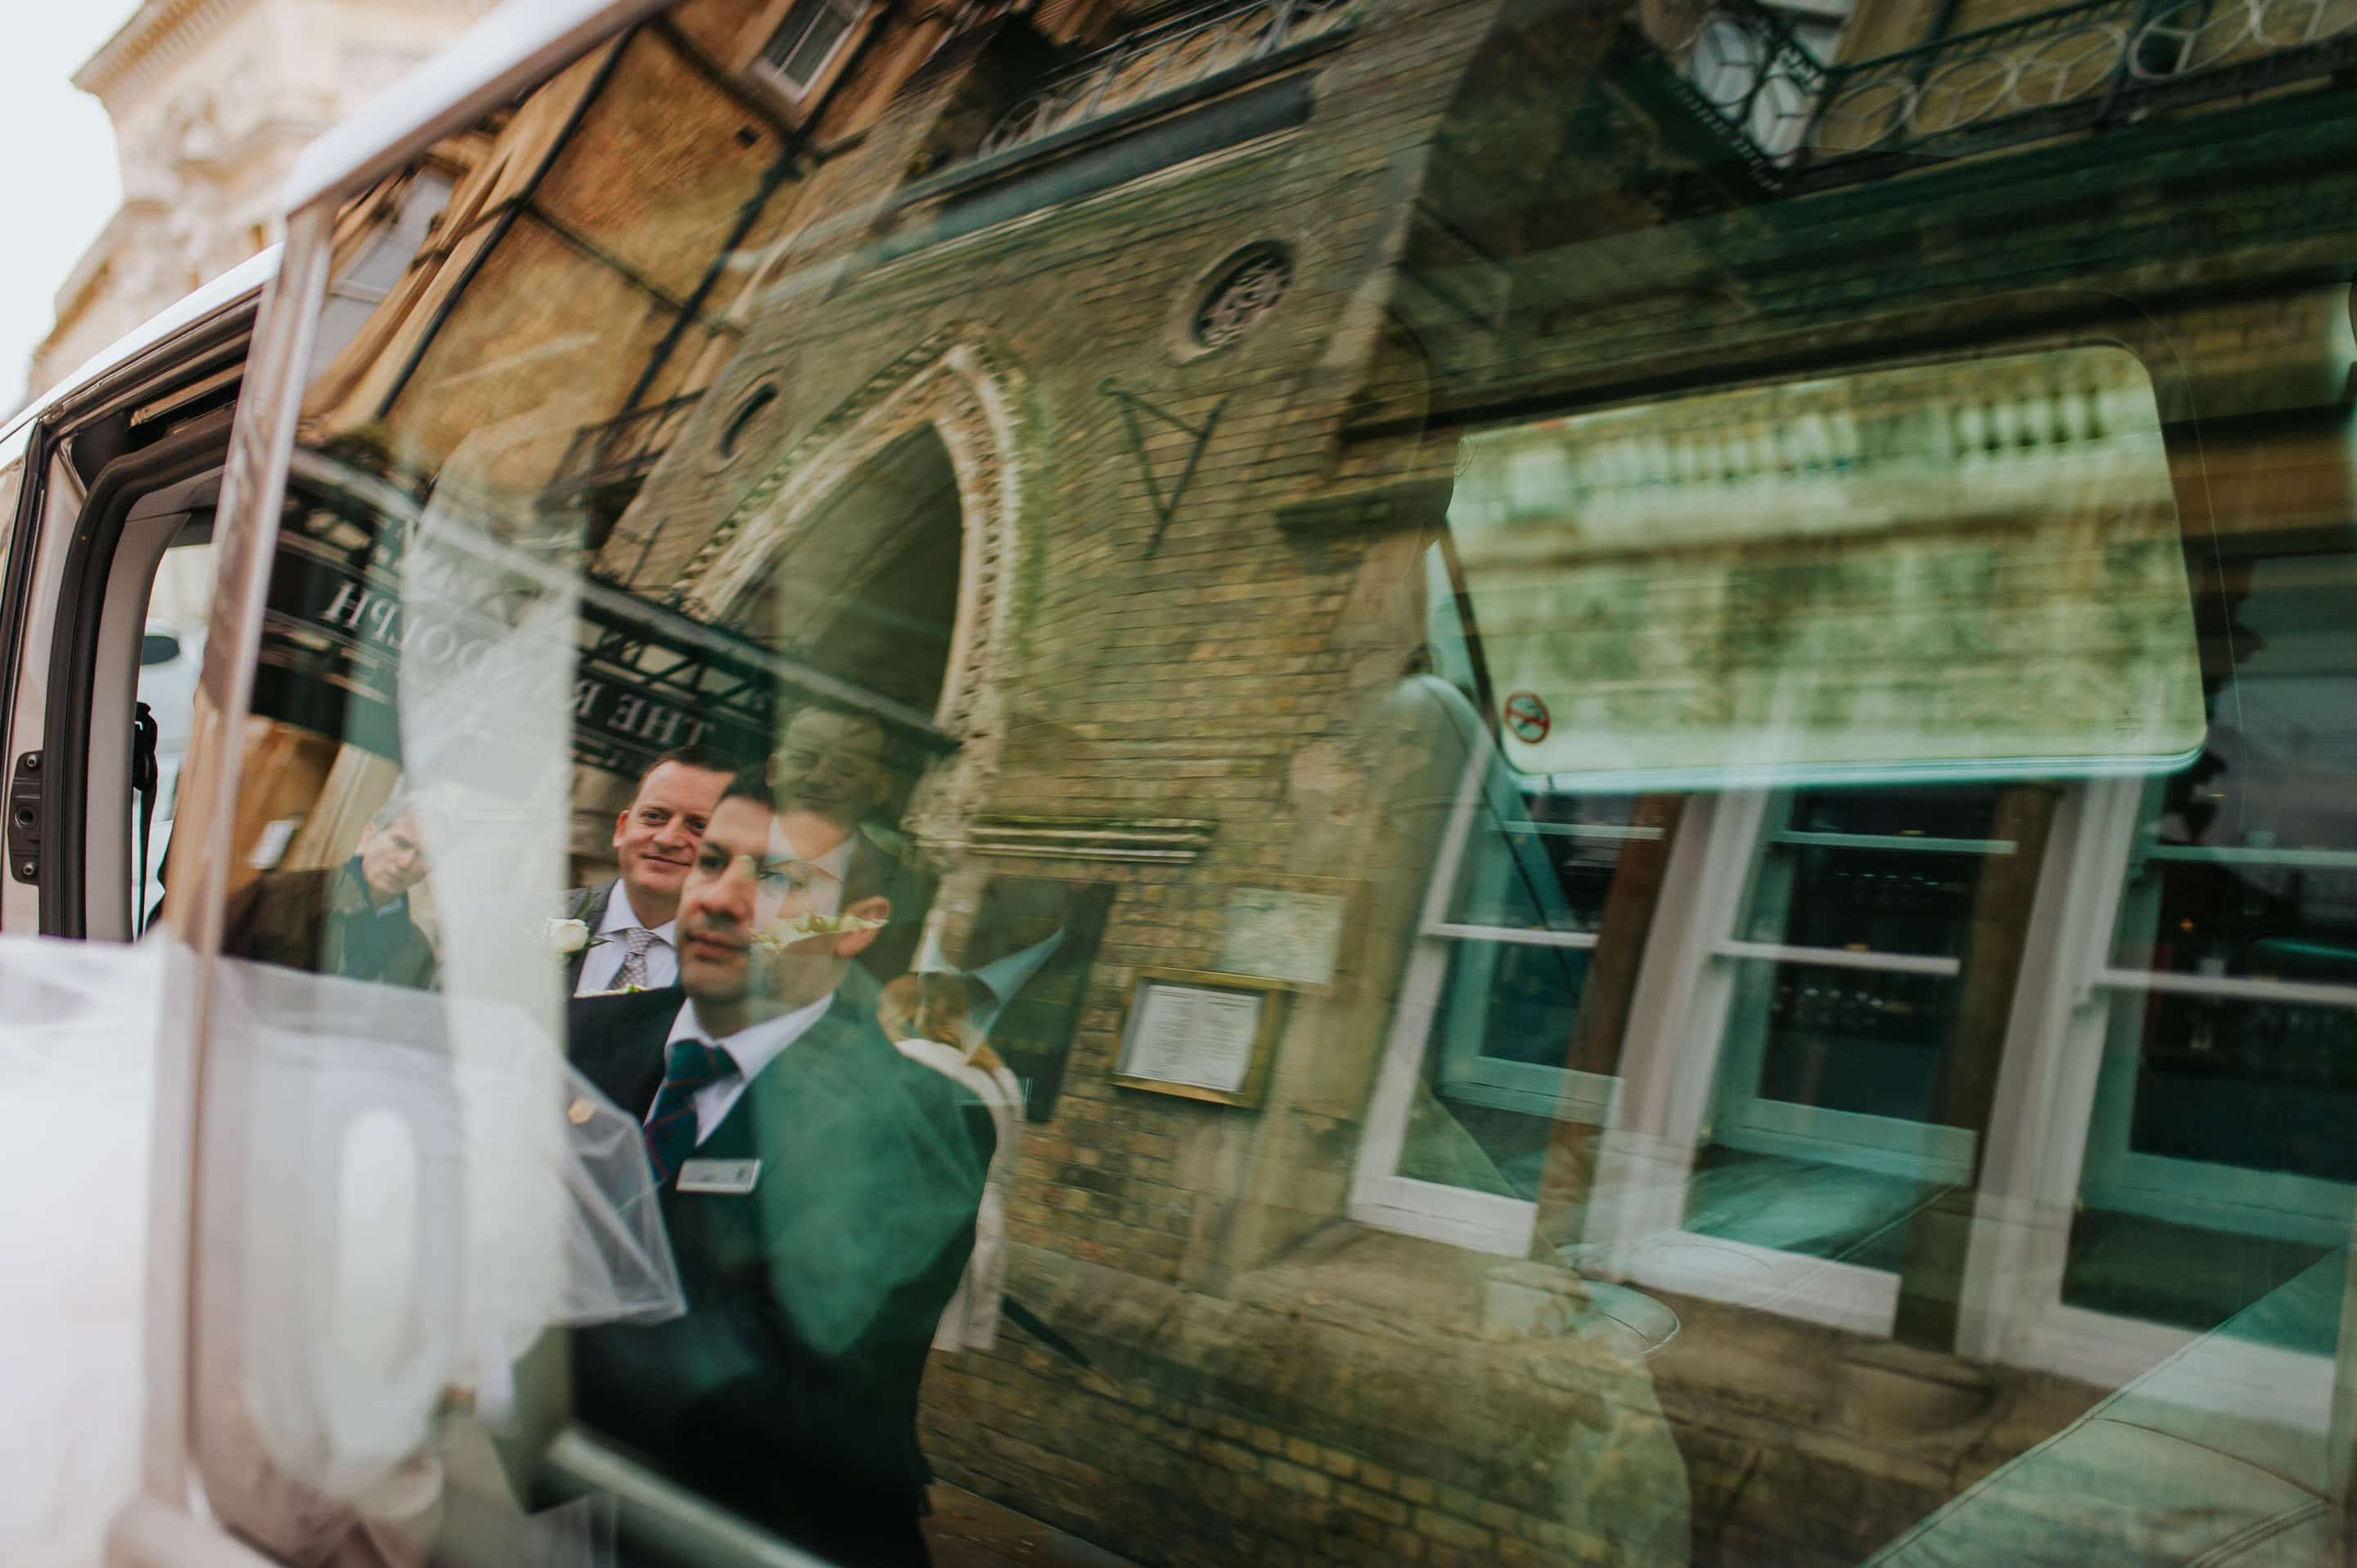 Tommie + Virginia | Wedding at Magdalen College in Oxford 1